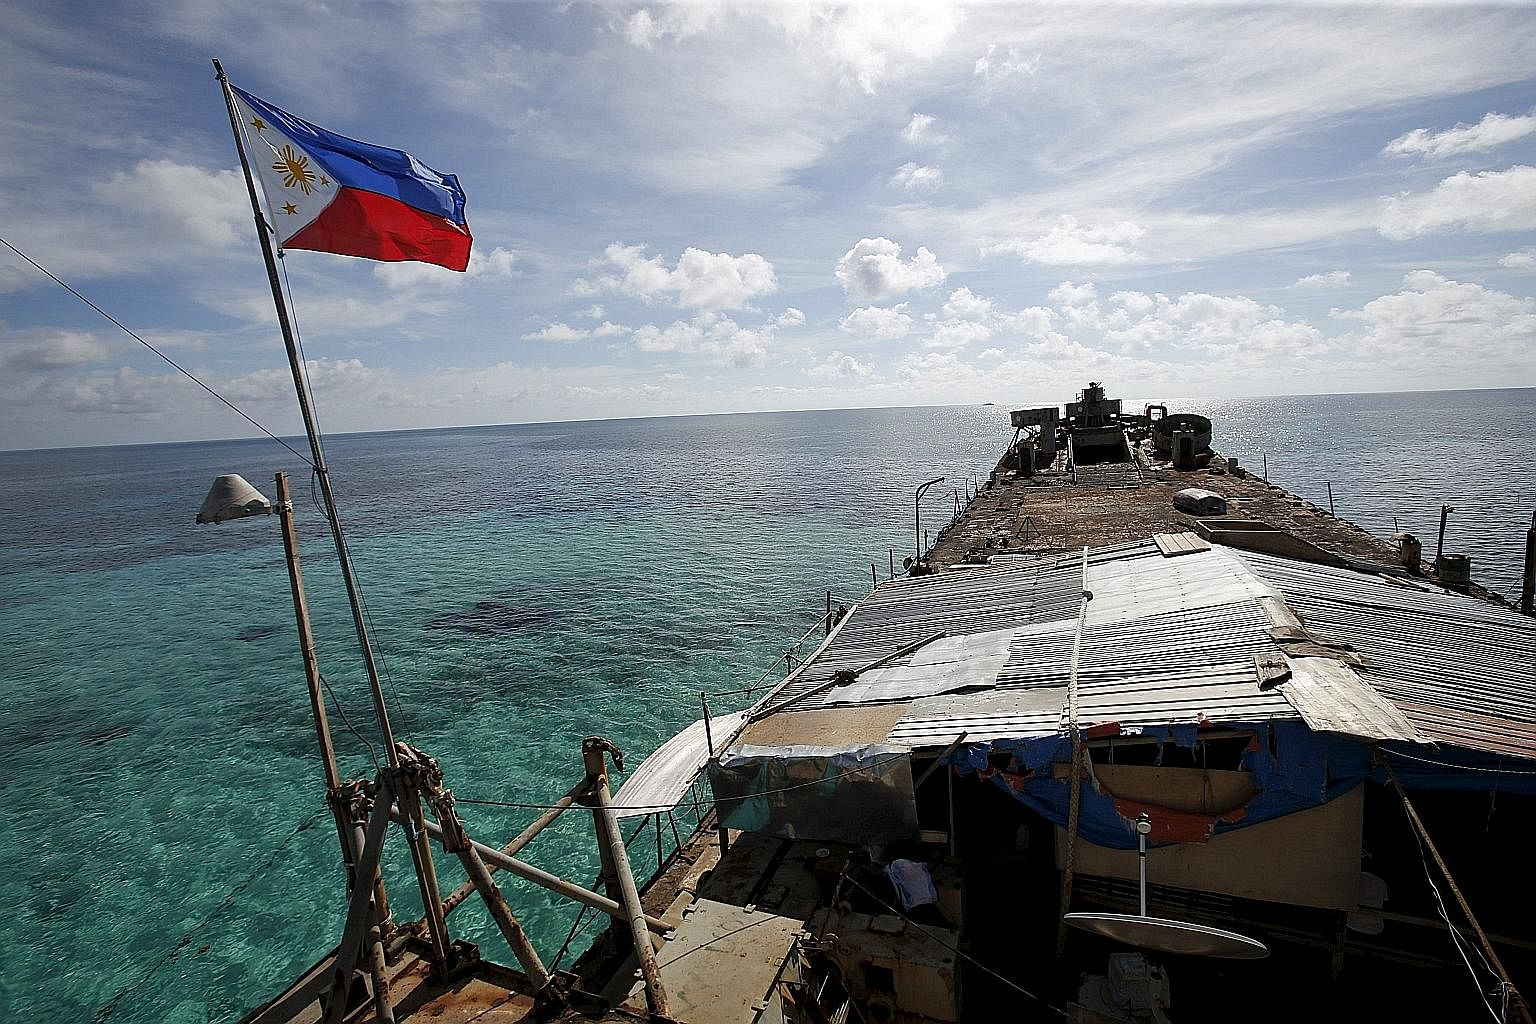 "The BRP Sierra Madre, a Philippine Navy ship that has been aground on the disputed Second Thomas Shoal, part of the Spratly Islands, since 1999. One analyst says China may seek to ""punish"" the Philippines after the Permanent Court of Arbitration's ru"